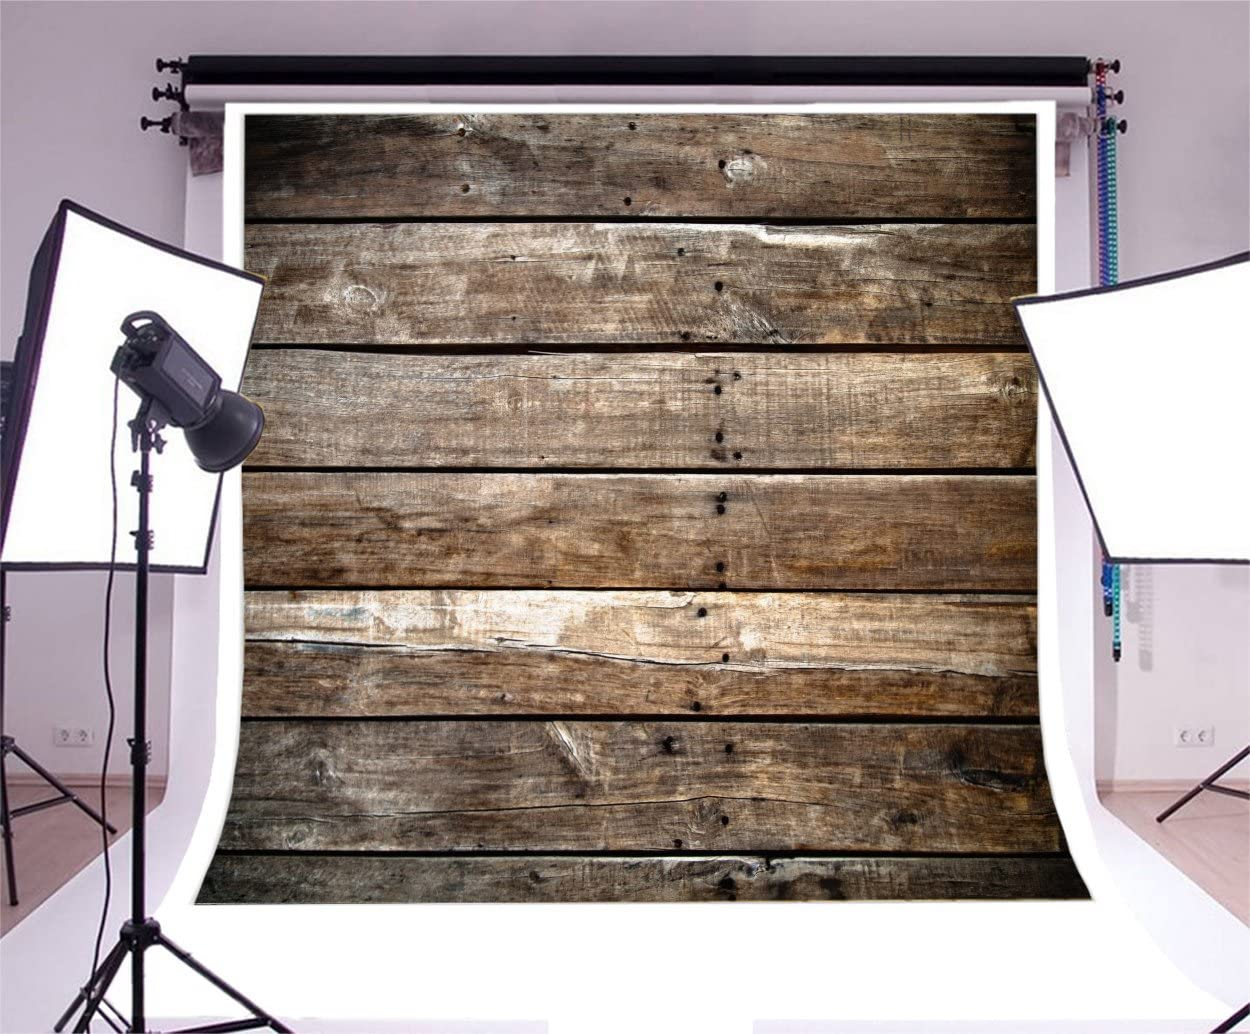 YongFoto 10x10ft Old Wood Plank Backdrop Rustic Retro Wooden Floor Photography Background Shabby Board Baby Shower Interior Decorations Kids Adult Portraits Photo Shoot Studio Props Wallpaper